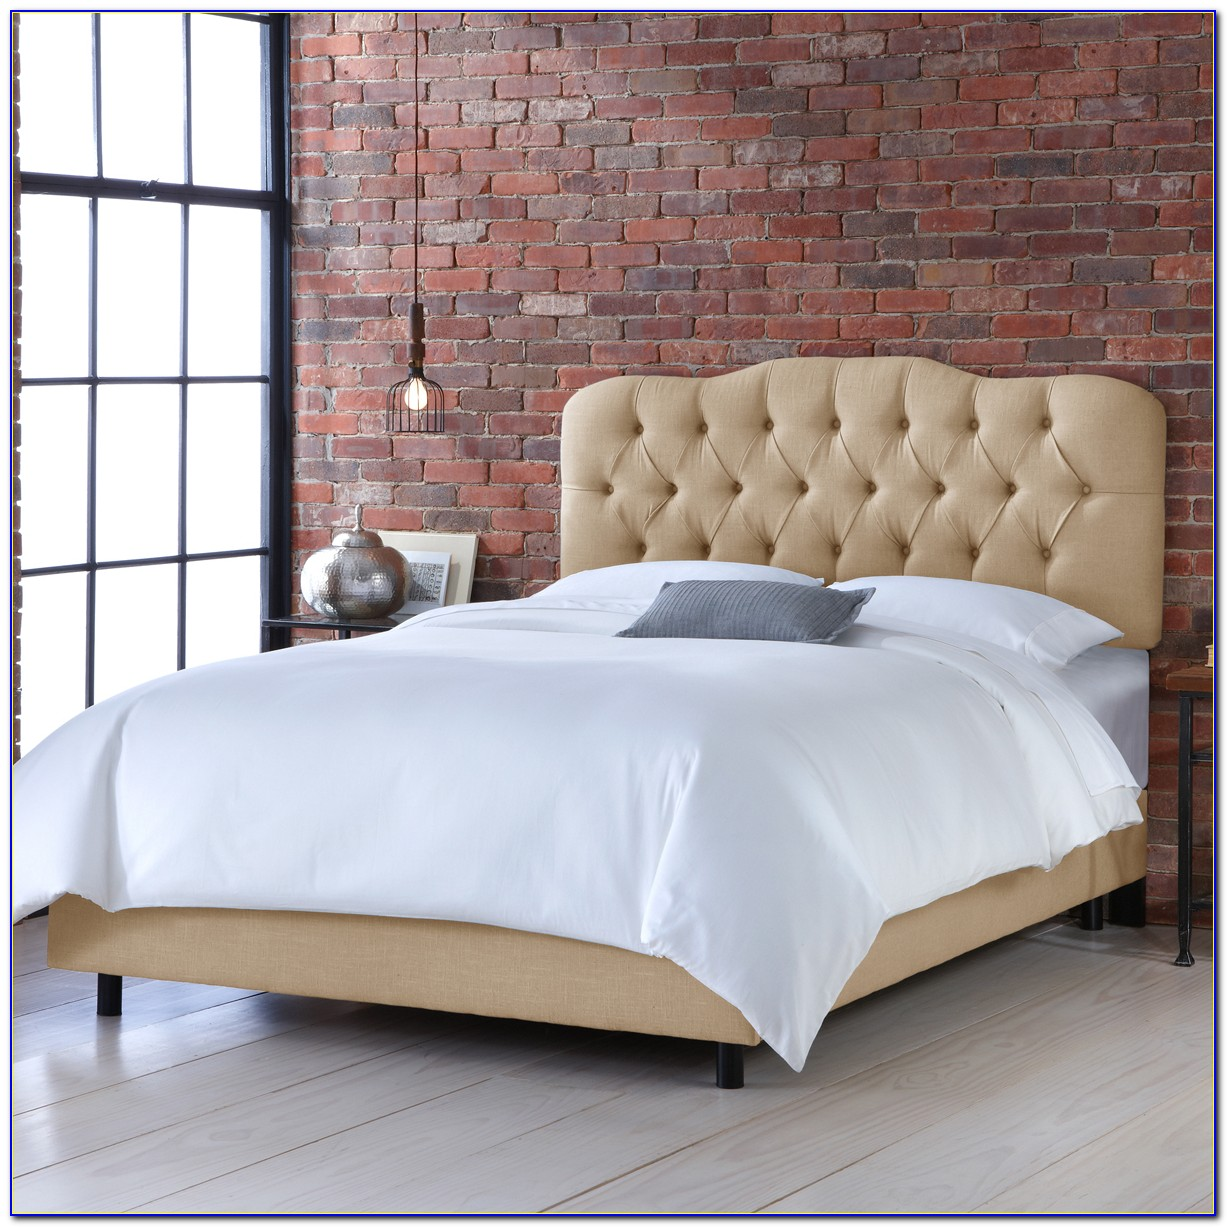 Skyline Furniture Zoe Tufted Headboard